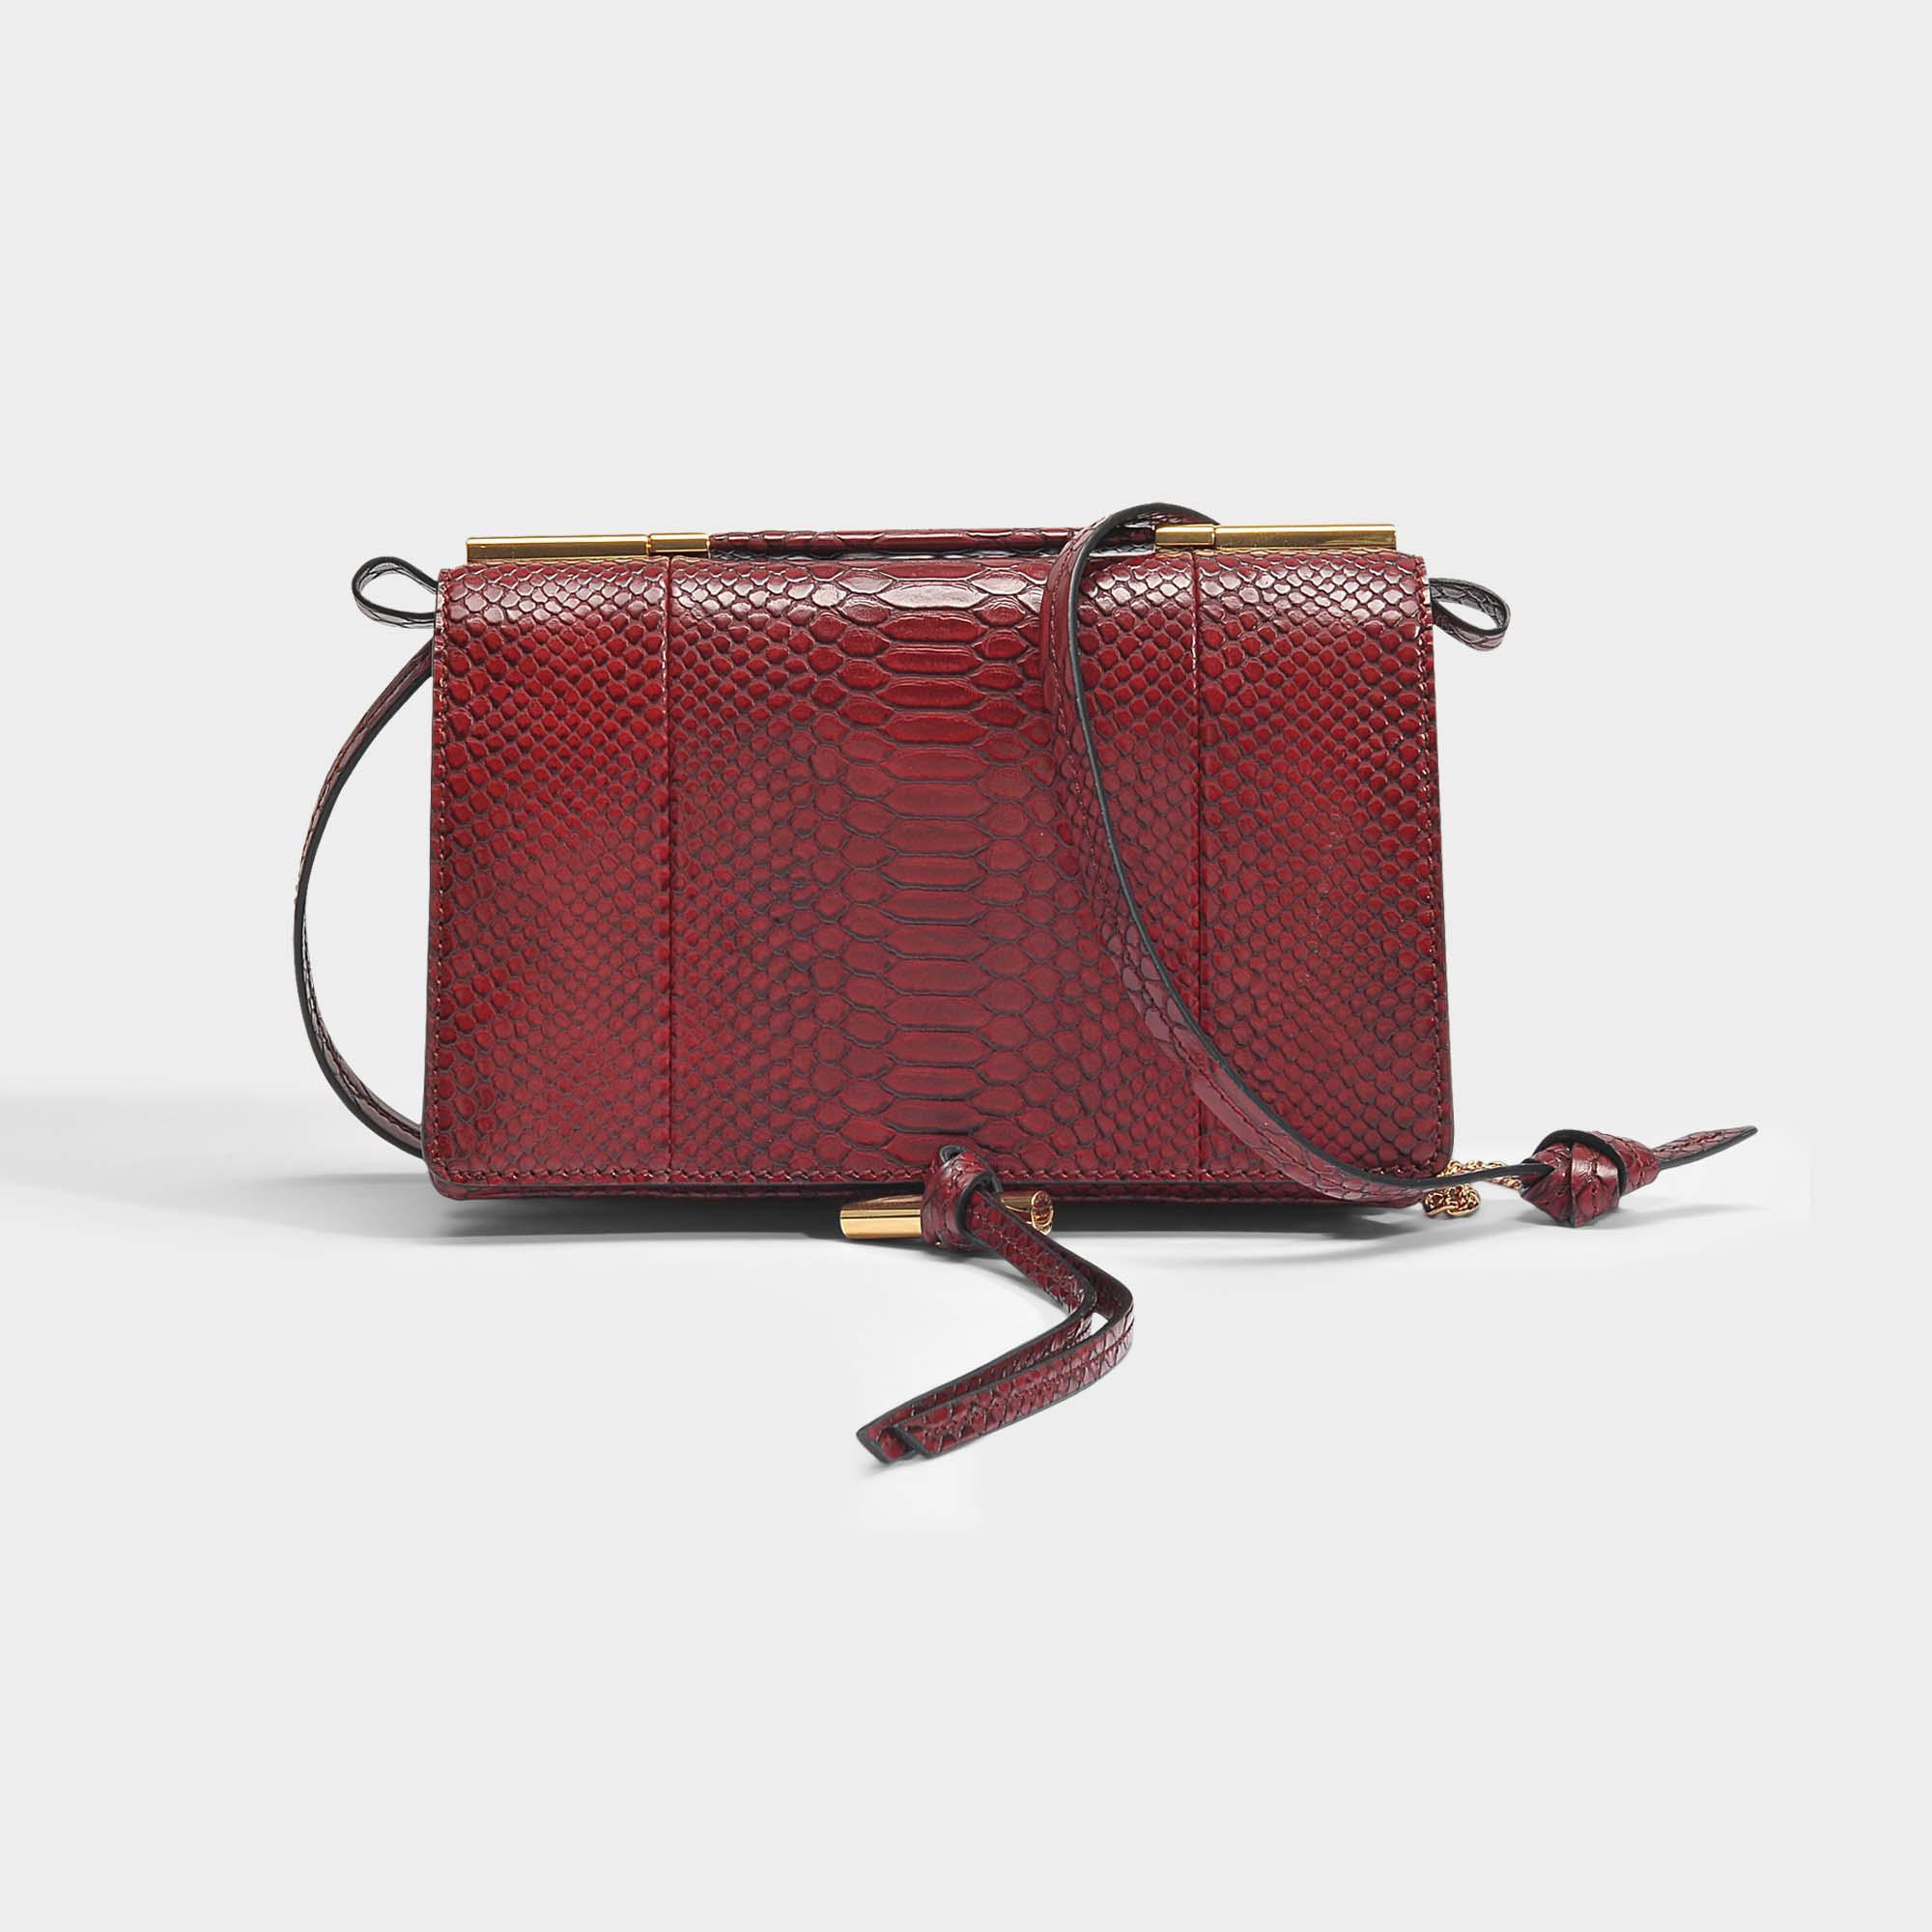 d17d32a8de Stella Mccartney Alter Snake Small Shoulder Bag In Burgundy Eco ...